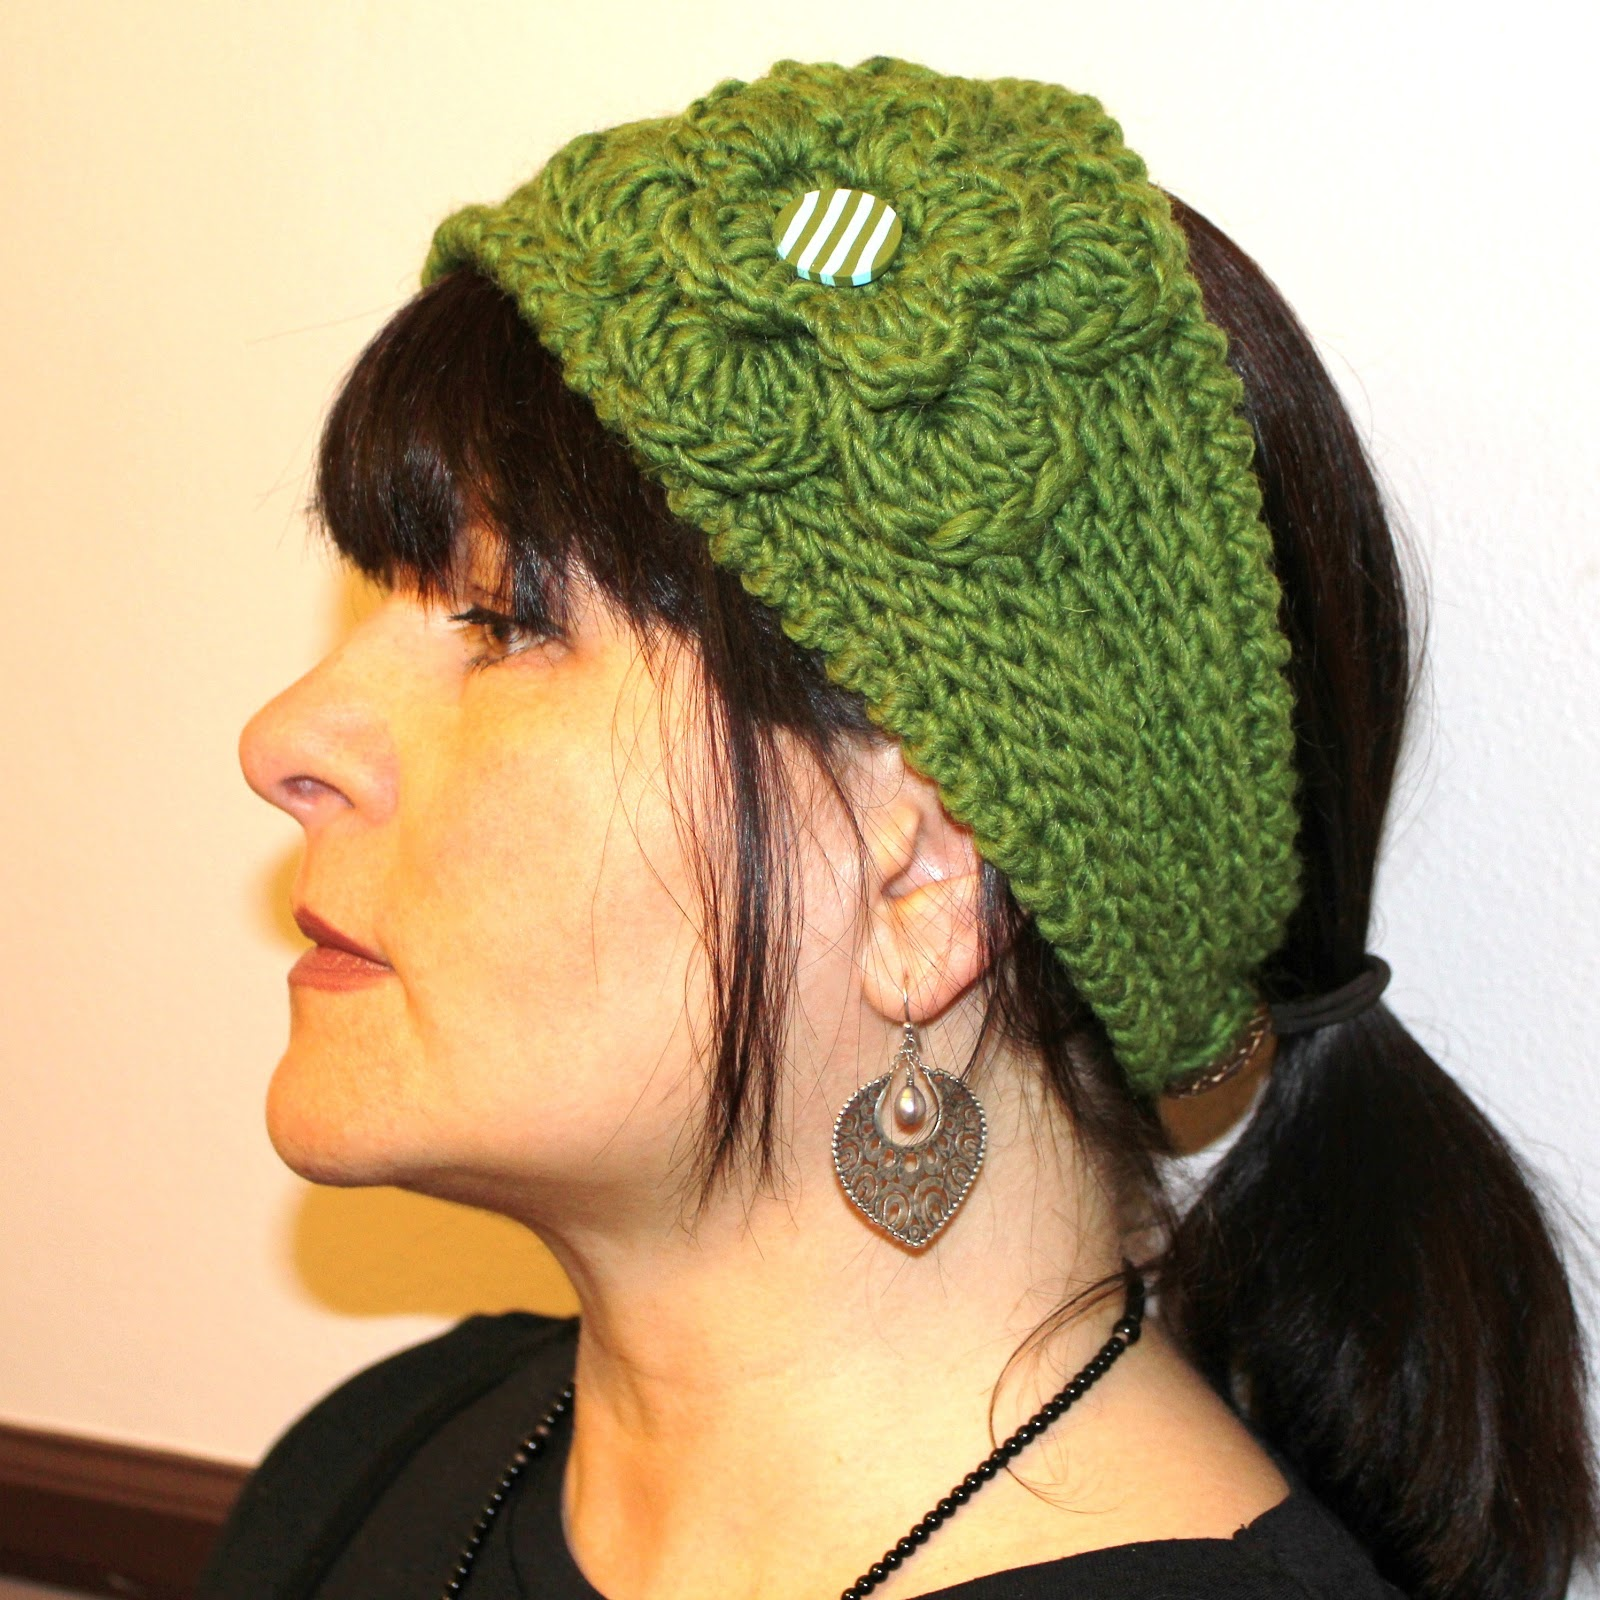 Free Crochet Patterns For Wide Headbands : Absolute Knits